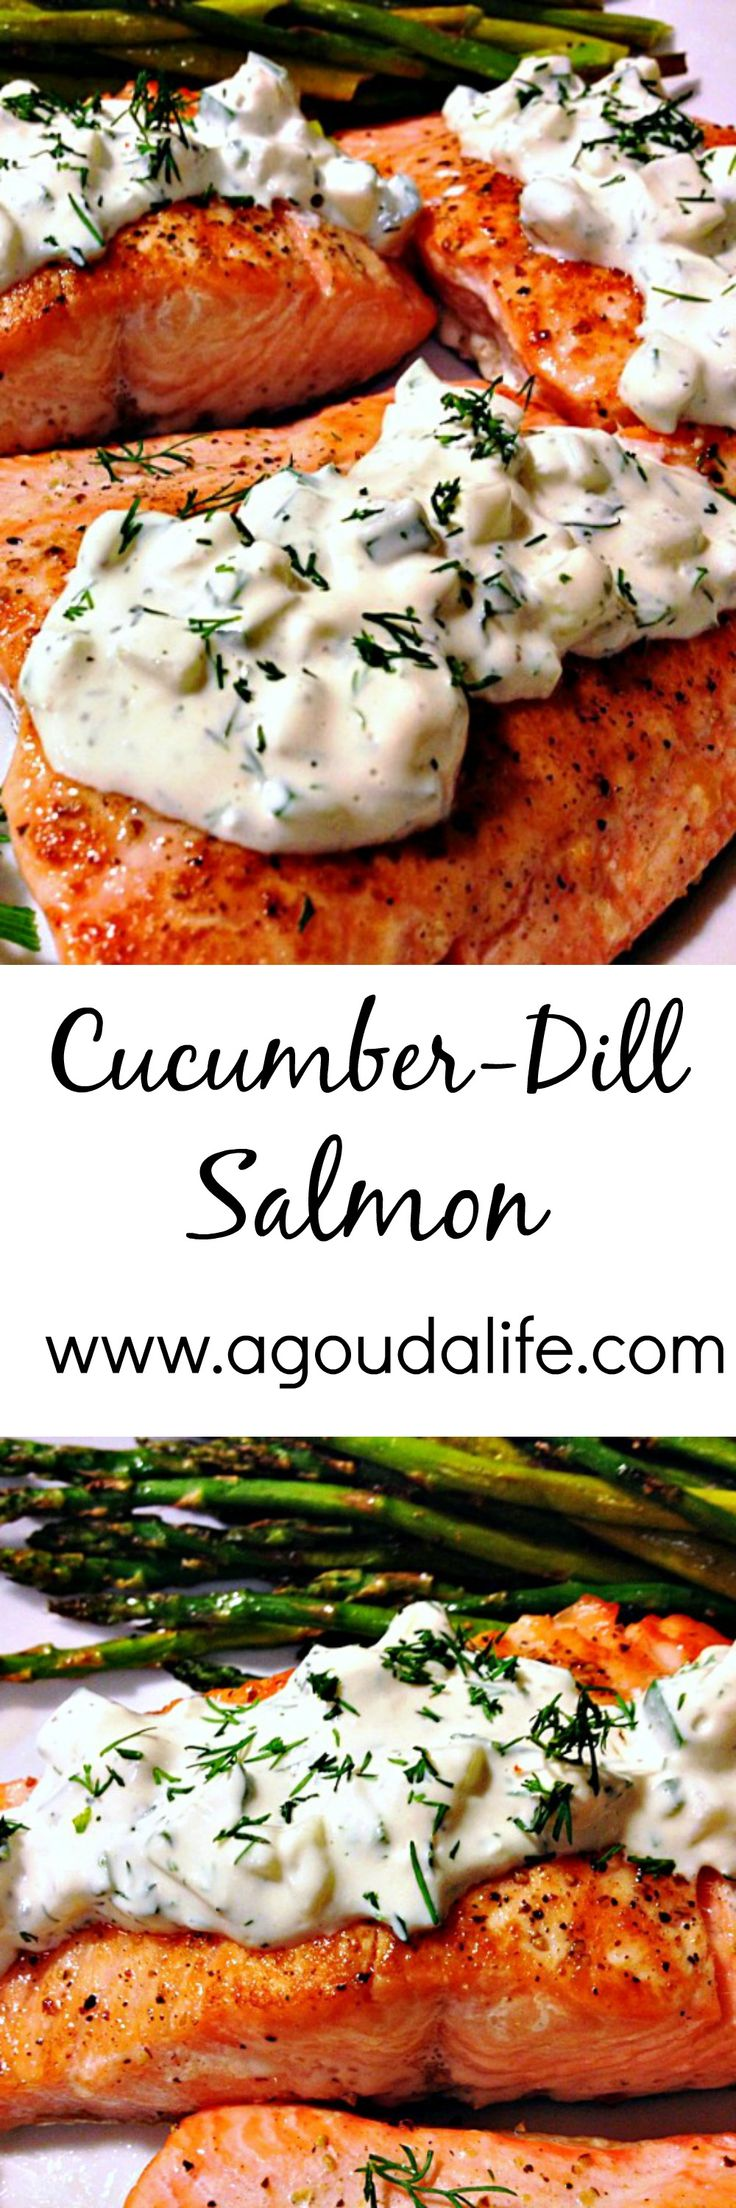 Cucumber Dill Salmon - stove to table in UNDER 30 minutes ~ a light, healthy FRESH meal.